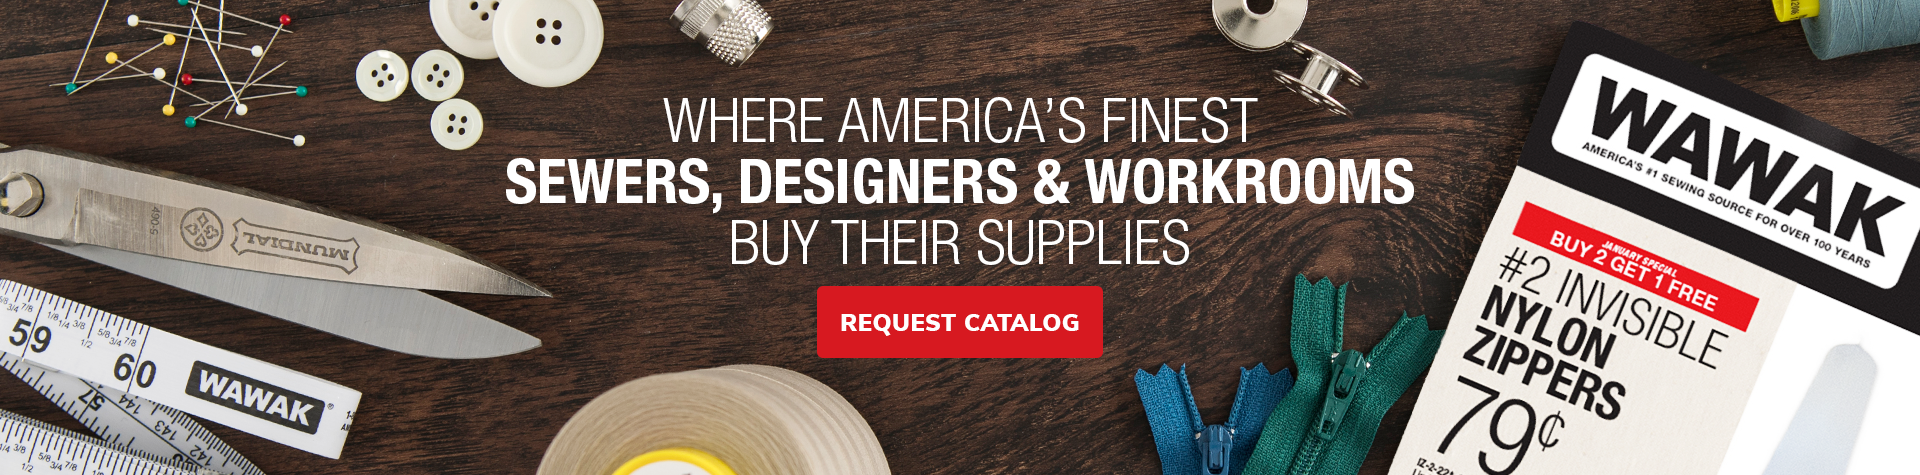 Where America's Finest Sewers, Designers & Workrooms Buy Their Supplies. Request Catalog.